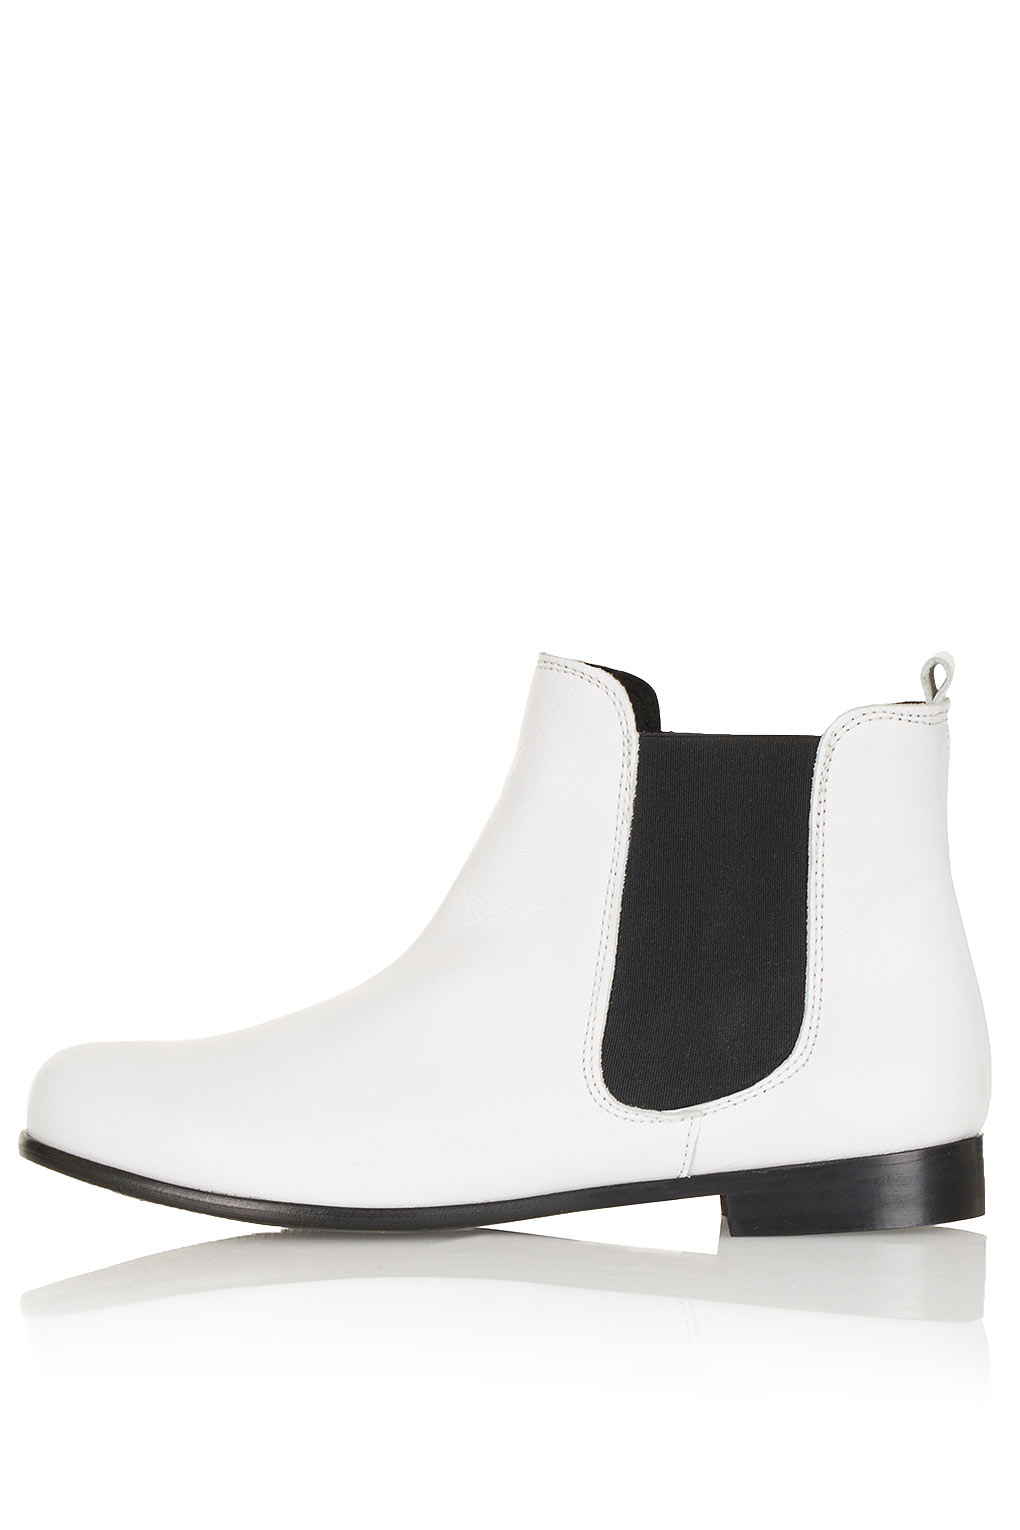 Lyst Topshop Abe2 Ultimate Chelsea Boots In White